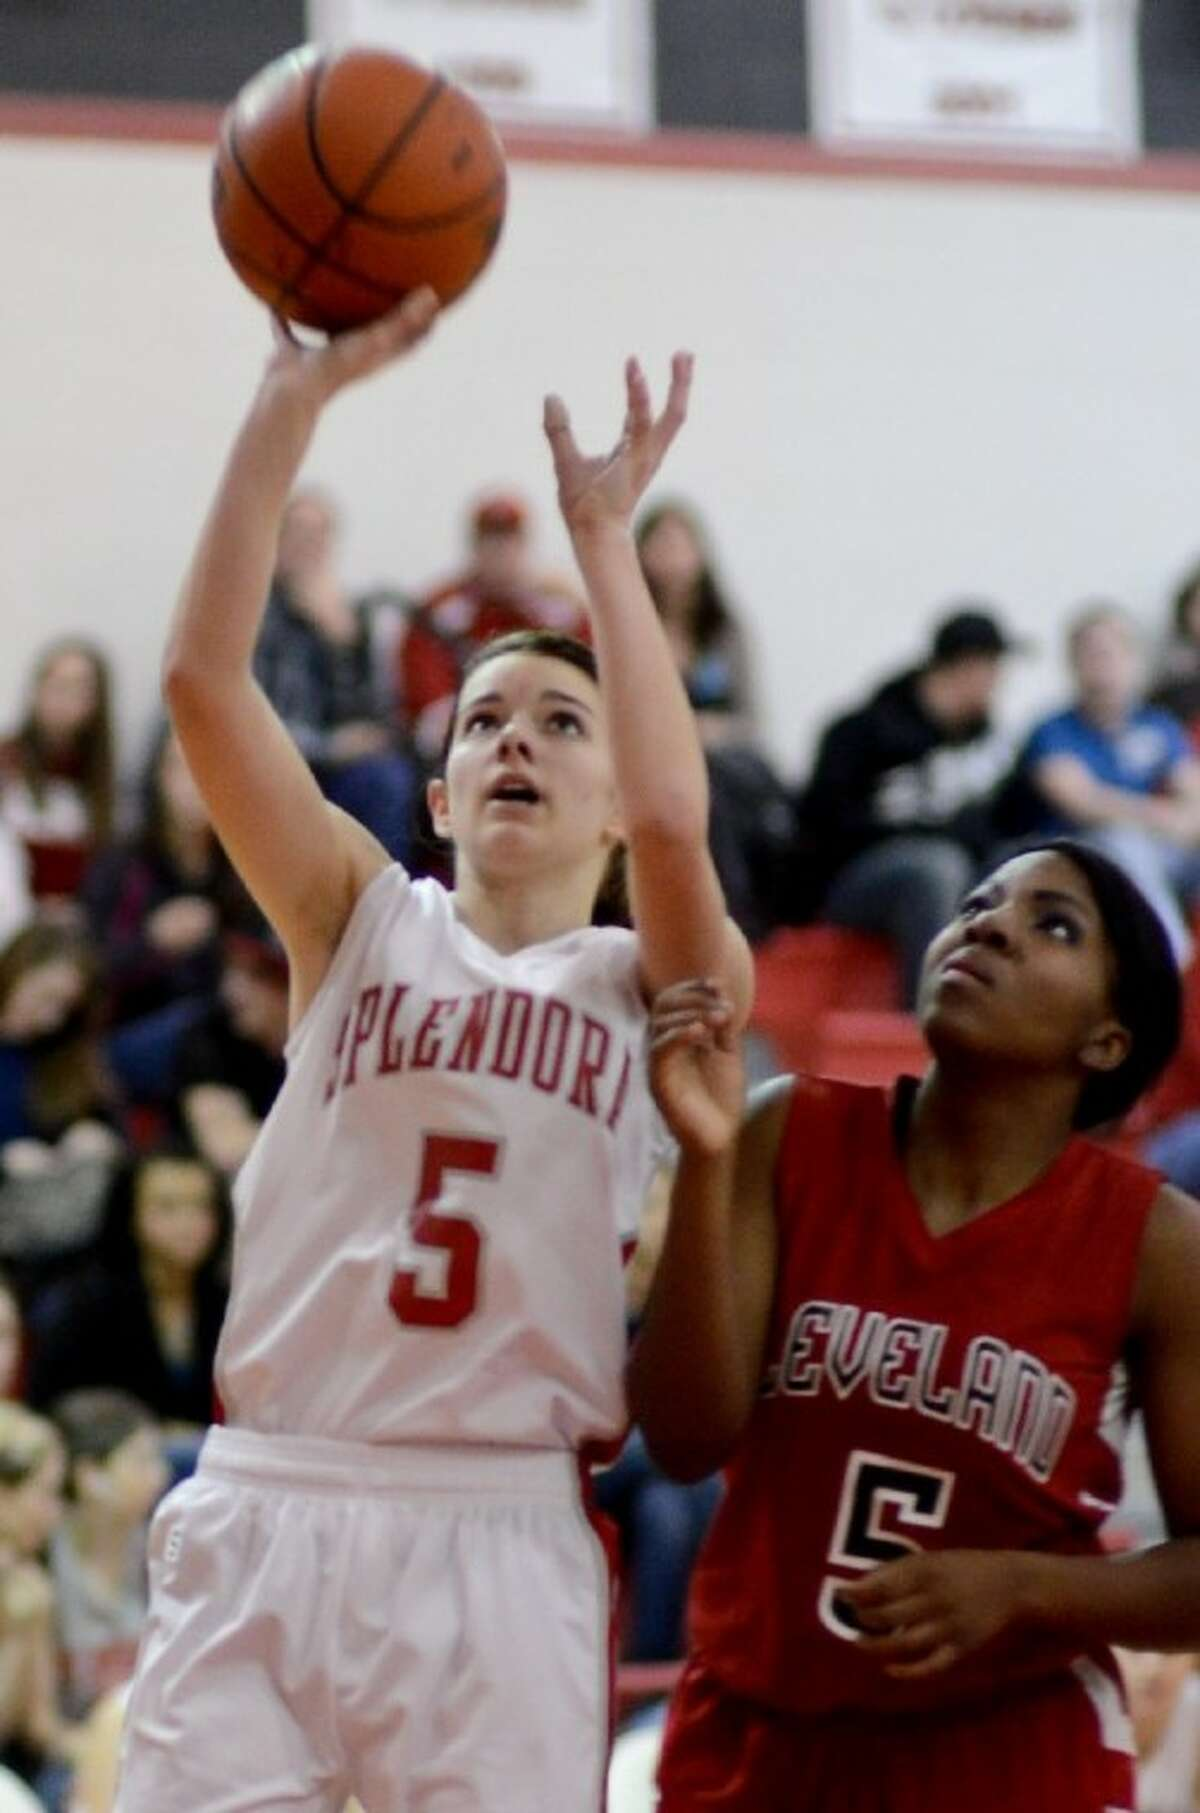 Emily Tuxford scored 13 points in Splendora's 42-32 win over Cleveland Jan. 4.